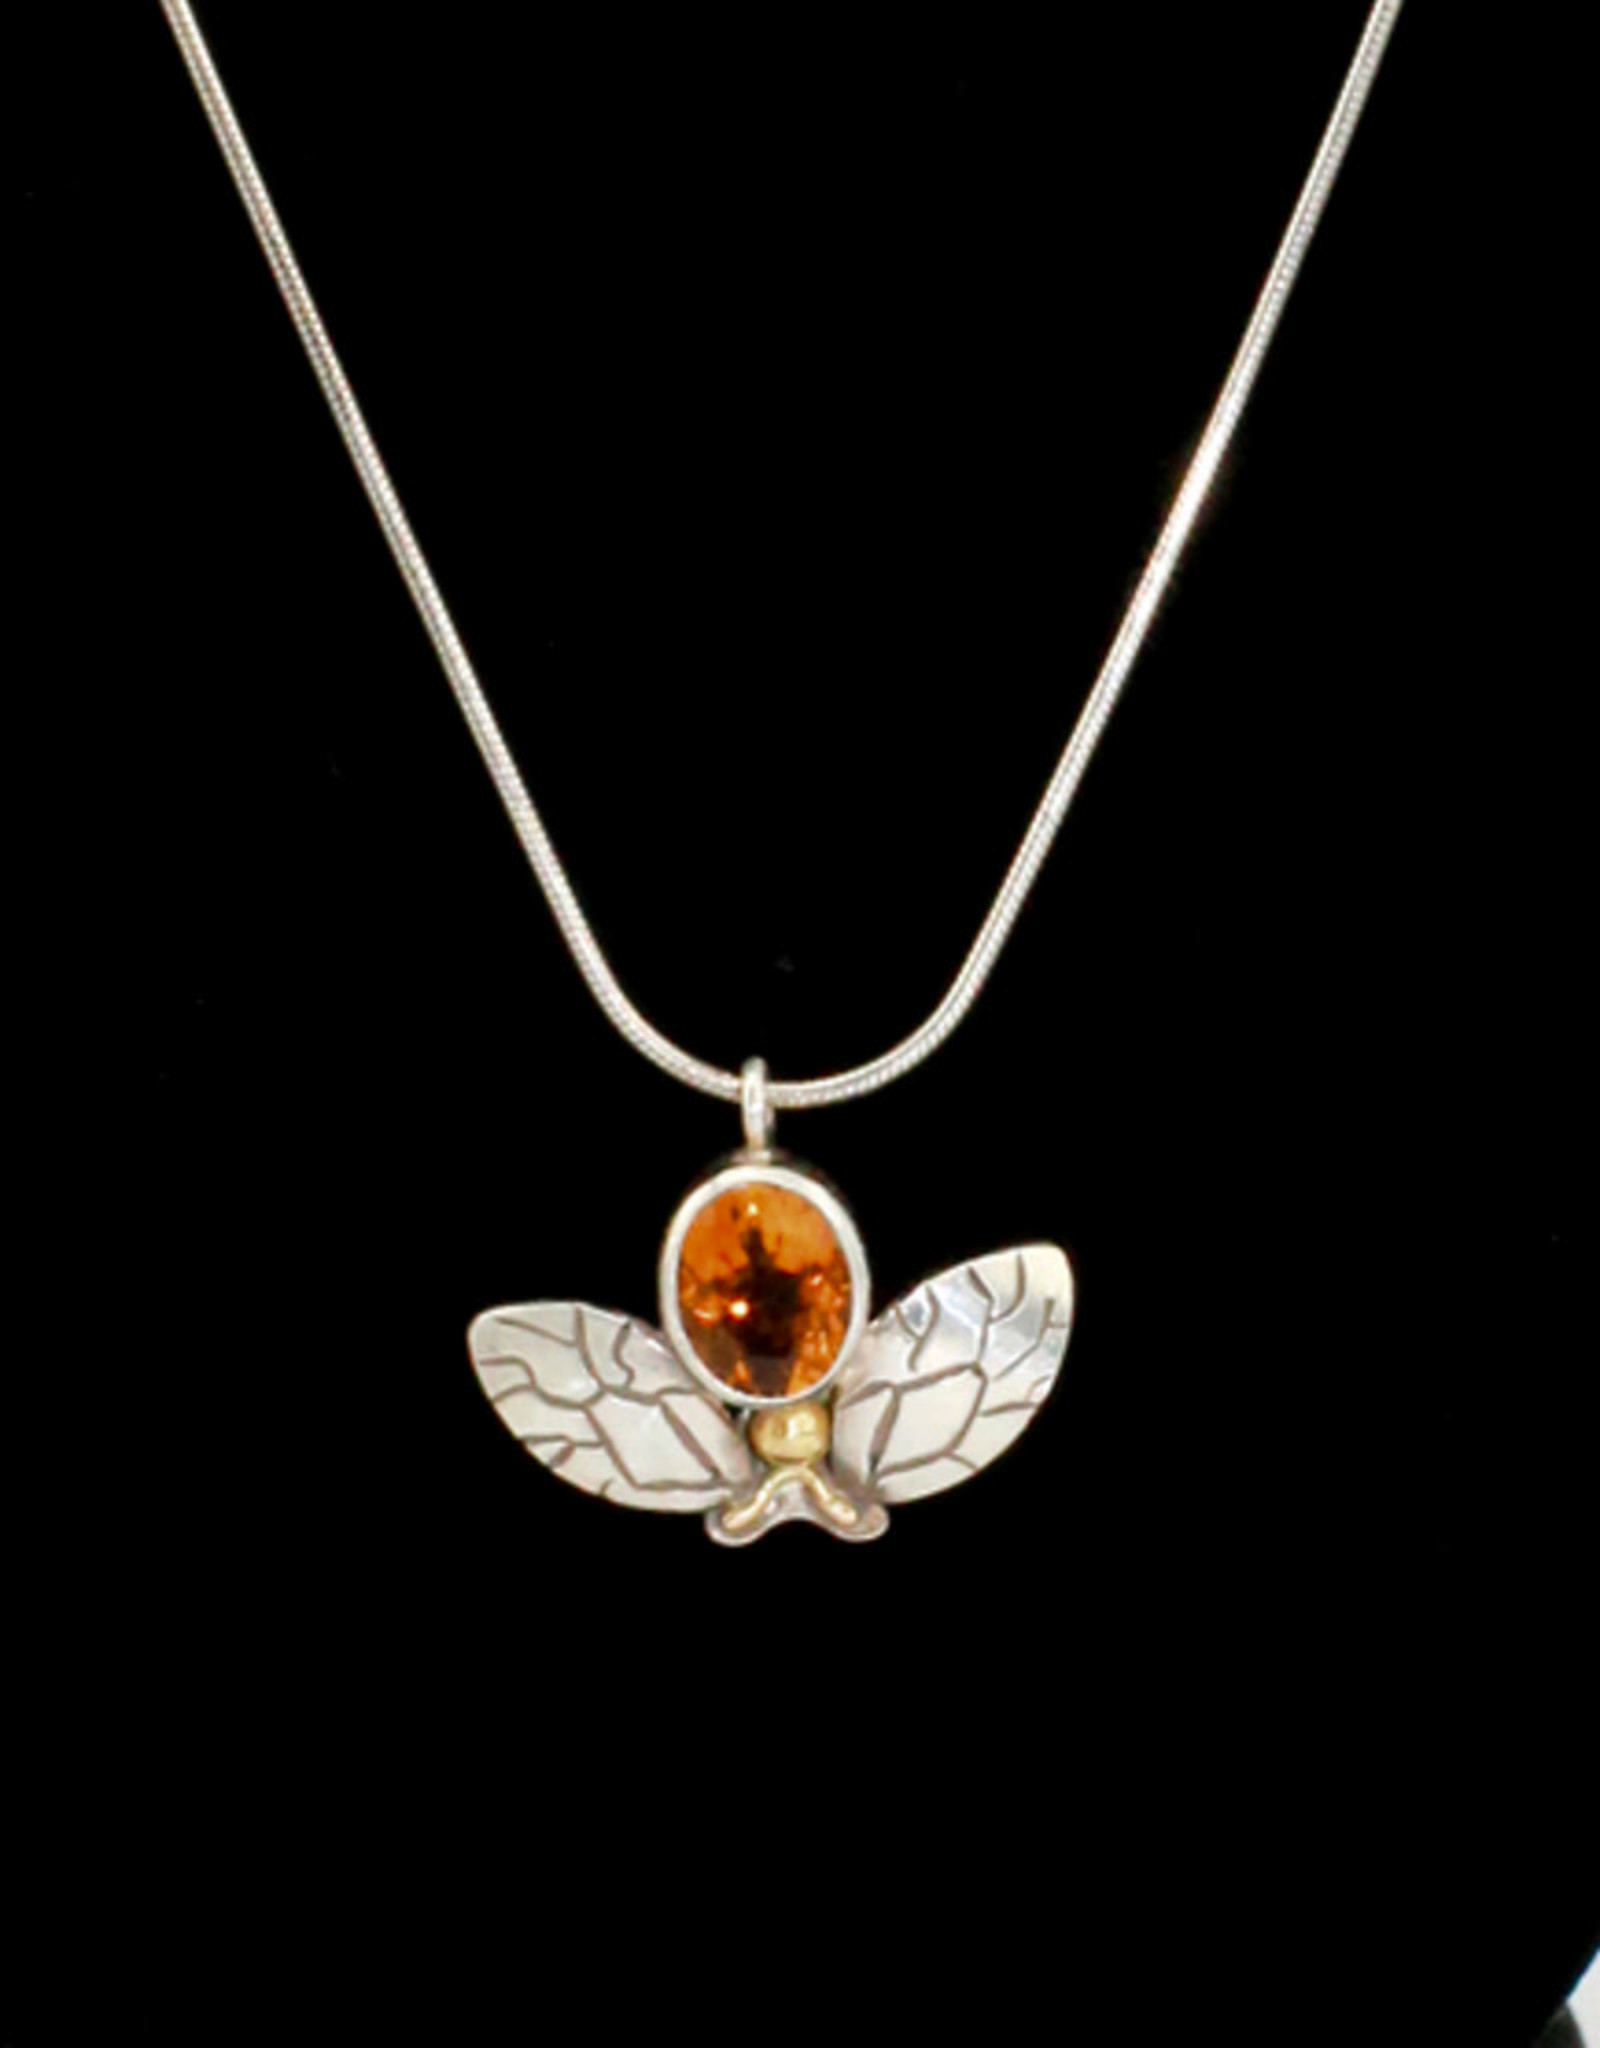 Nick DeDo Jewelry Nectar with Gold Necklace